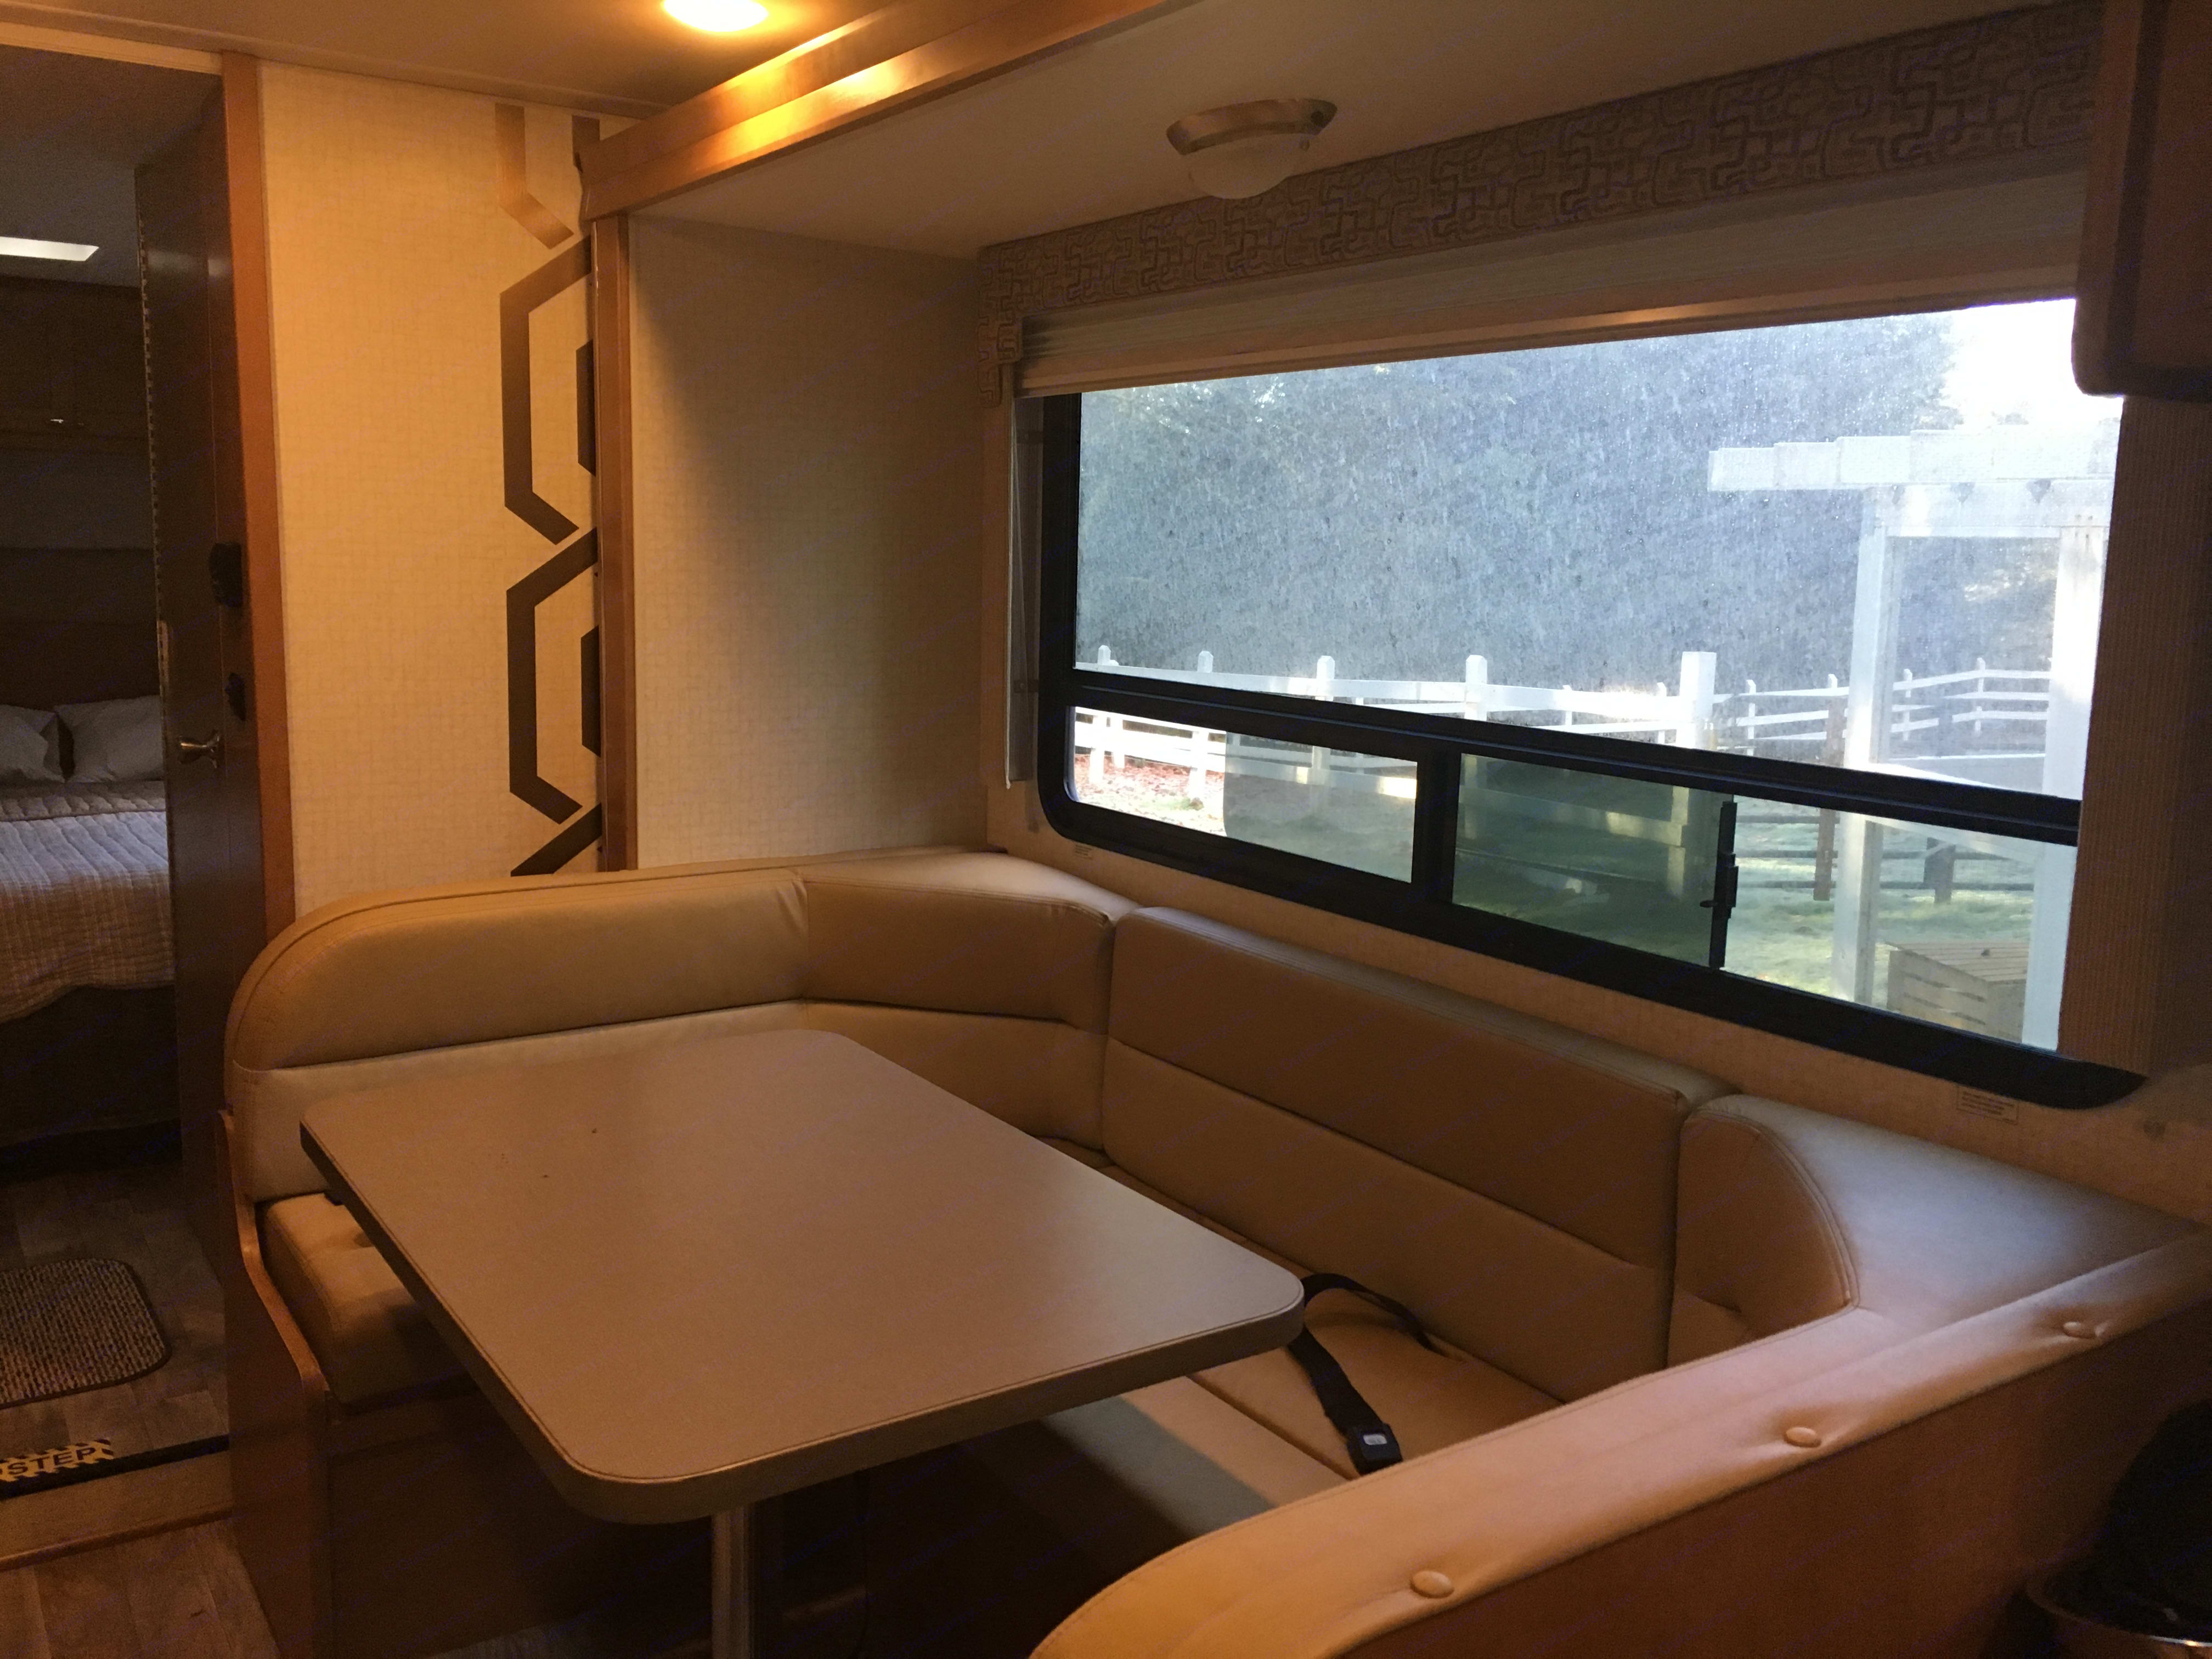 Dining banquette - converts to a bed. Winnebago Minnie Winnie 2017